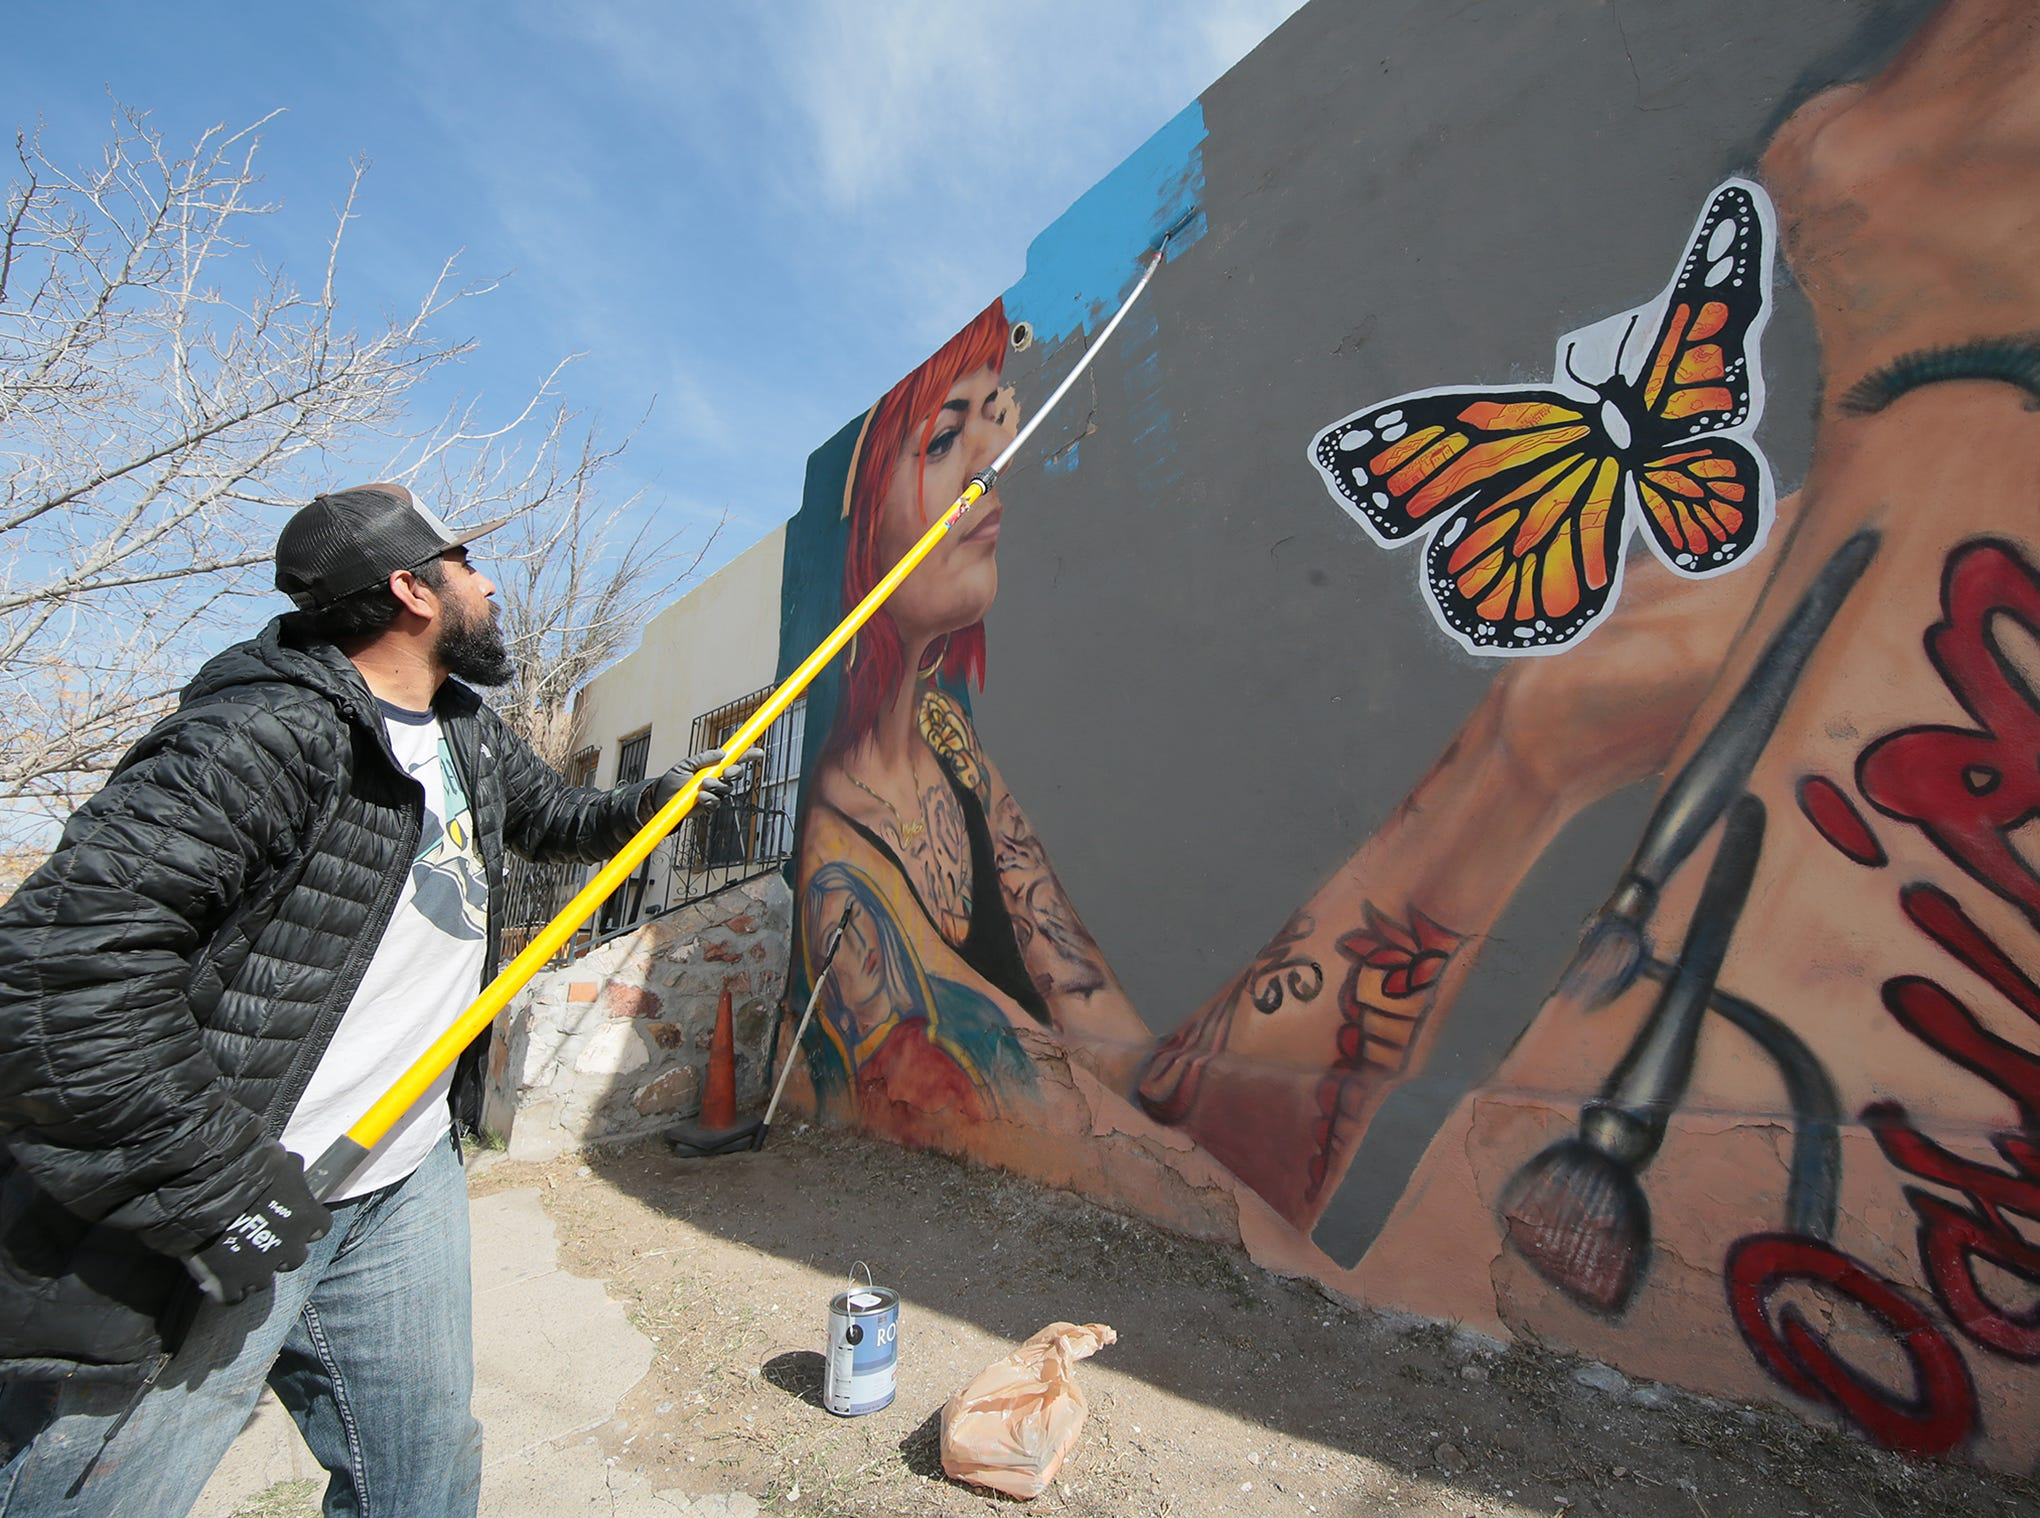 "El Paso muralist Cimi Alvarado is working to finish his latest mural at the corner of Tays and Delta in the Segundo Barrio. The mural follows closely a poem by Pavel Freidman, a child who was murdered at the Theresienstadt Concentration Camp. Alvarado said we can't repeat this history, citing the child migrant detention centers where refugees were being held.  The mural is a collaboration between Cimi Alvarado, The University of St. Thomas' VISION Program, Kalavera Culture Shop, Gloria Yrrobali and Martin ""Blast"" Zubia."